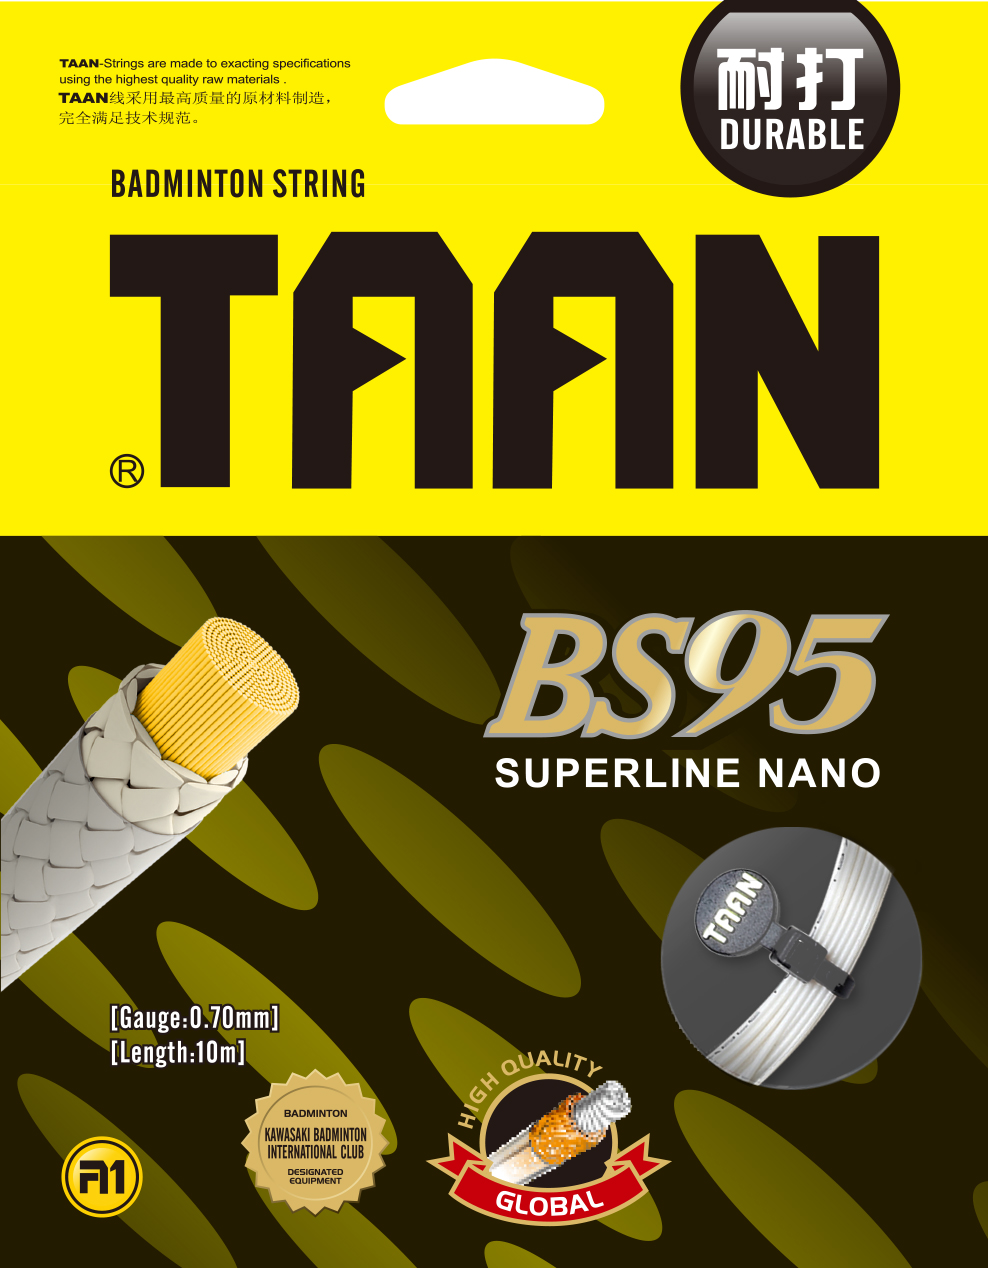 Струна TAAN BS95 SUPERLINE NANO 0,7мм (длина 10 метров).